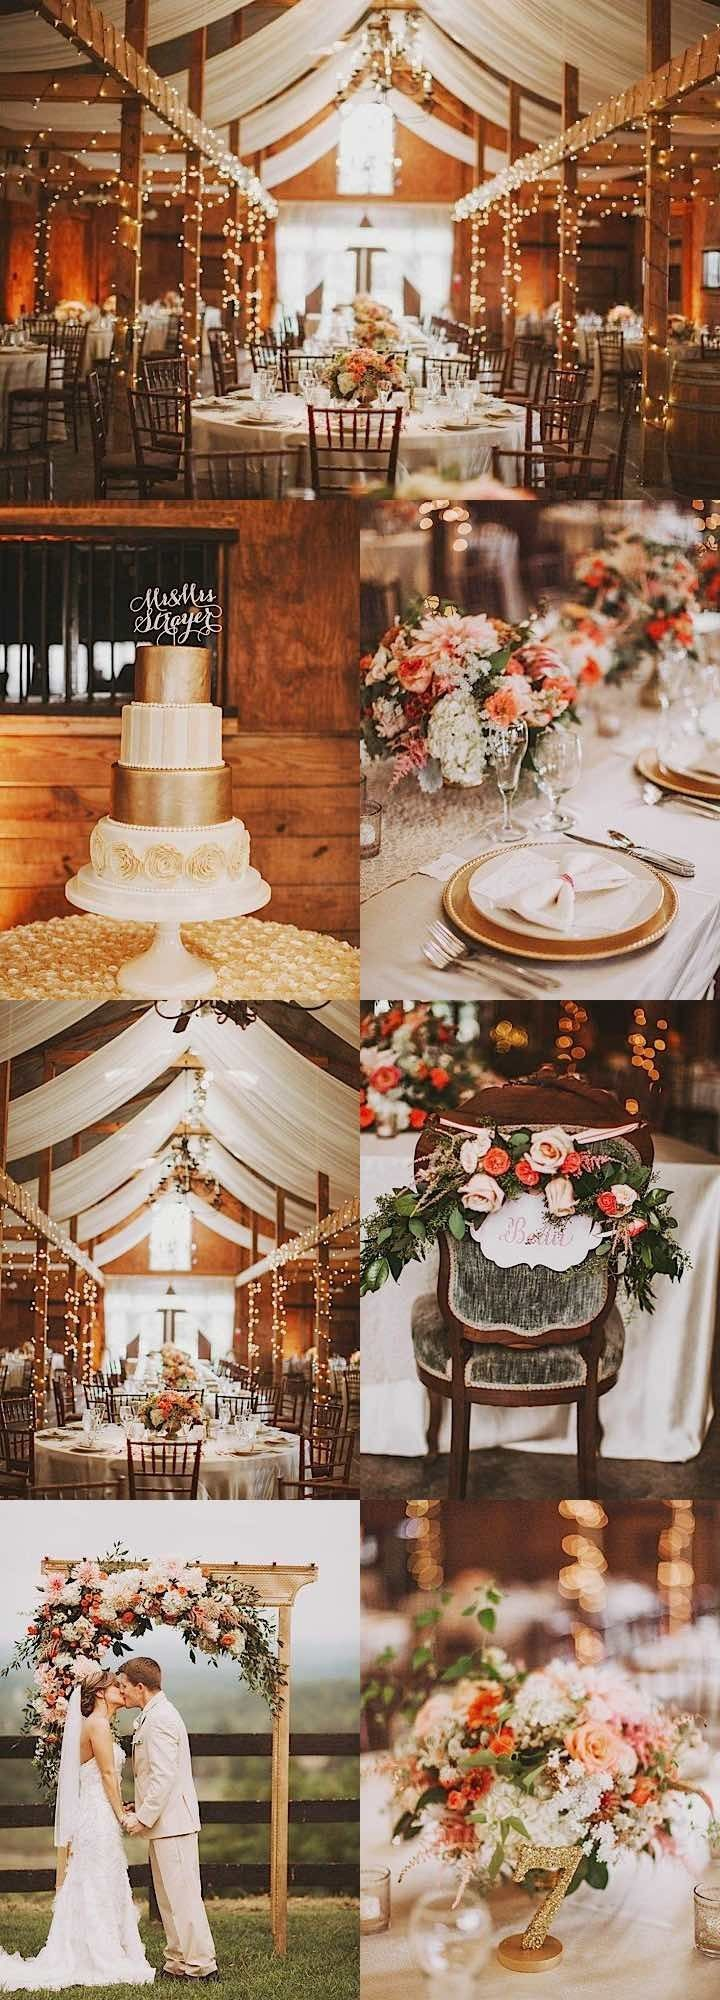 Charming Vintage Decor Totally Transforms Virginia Wedding Venue - MODwedding